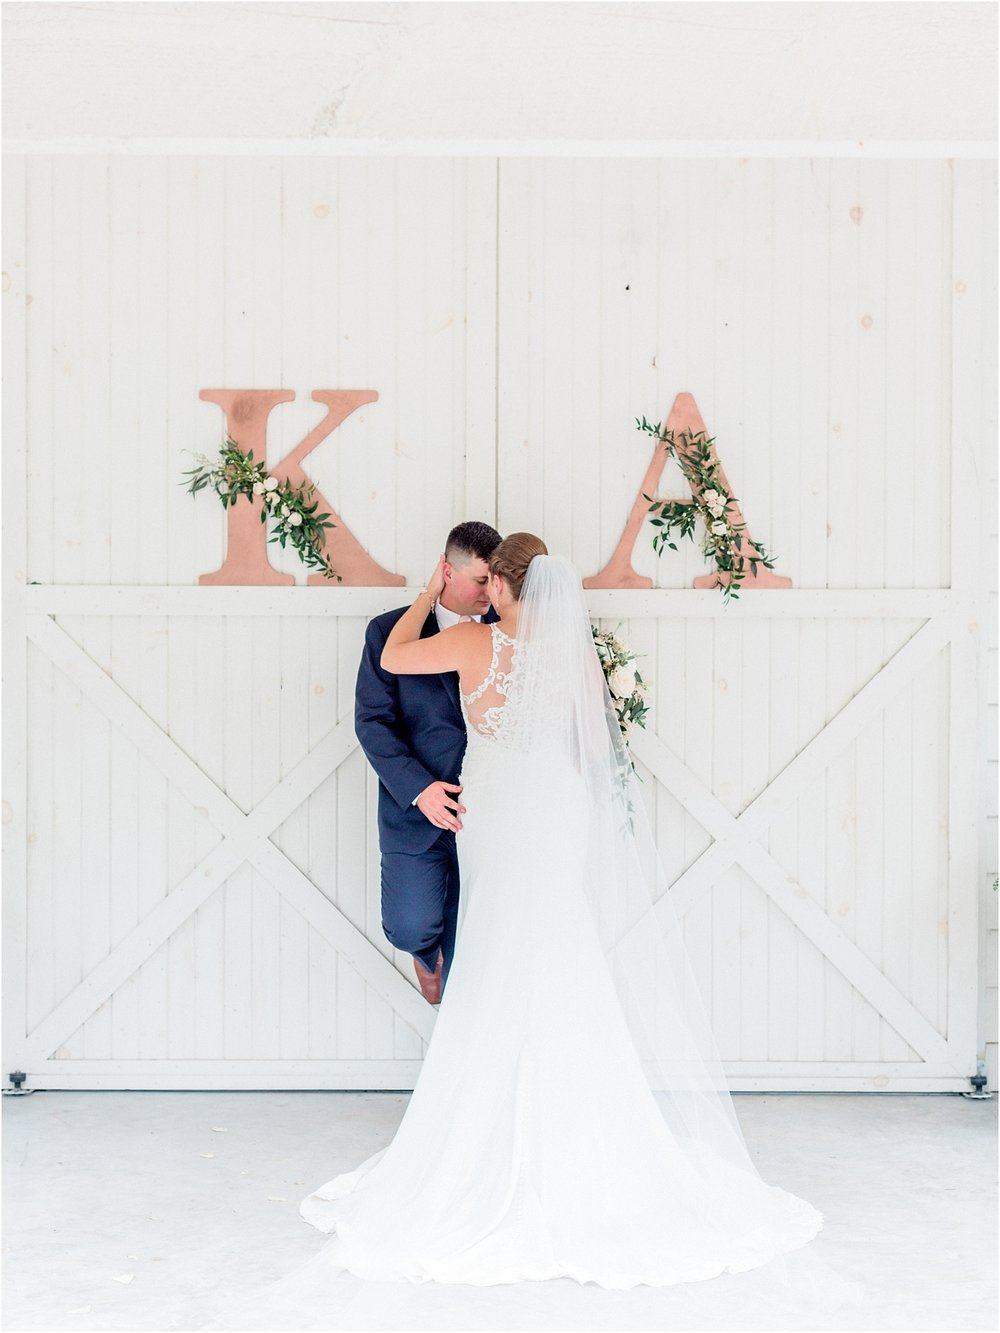 Lisa Silva Photography- Ponte Vedra Beach, St. Augustine and Jacksonville, Florida Fine Art Film Wedding and Boudoir Photography- Elegant Blush and Navy Wedding at Chandler Oaks Barn in St. Augustine, Florida_0090.jpg